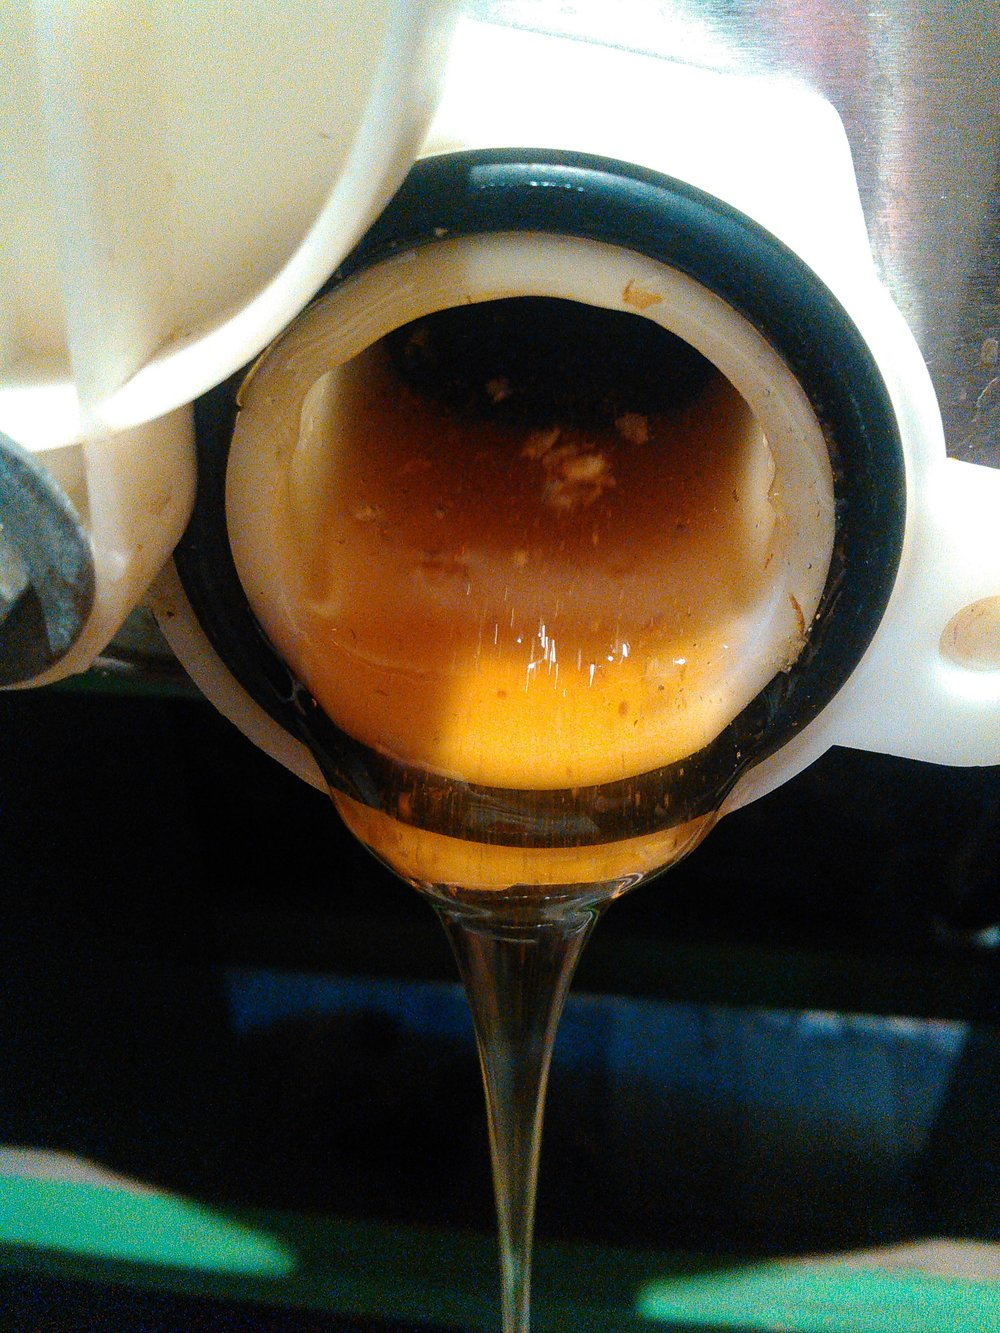 Honey pouring from the extractor